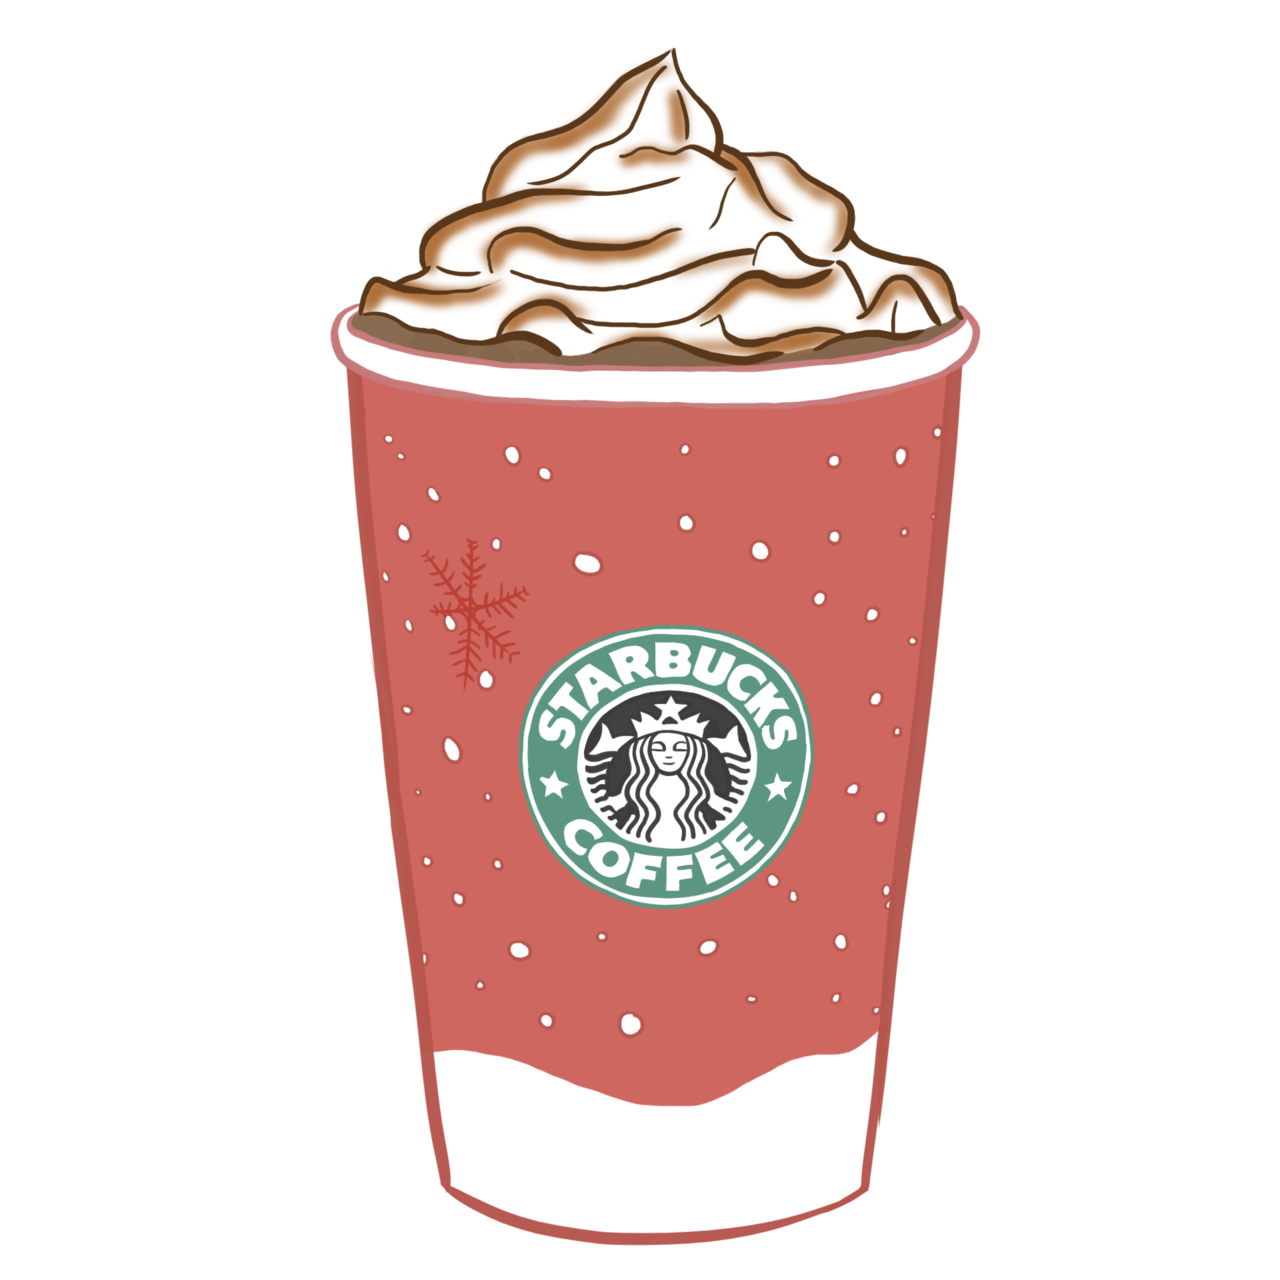 Images For > Starbucks Transparent Tumblr Pink.